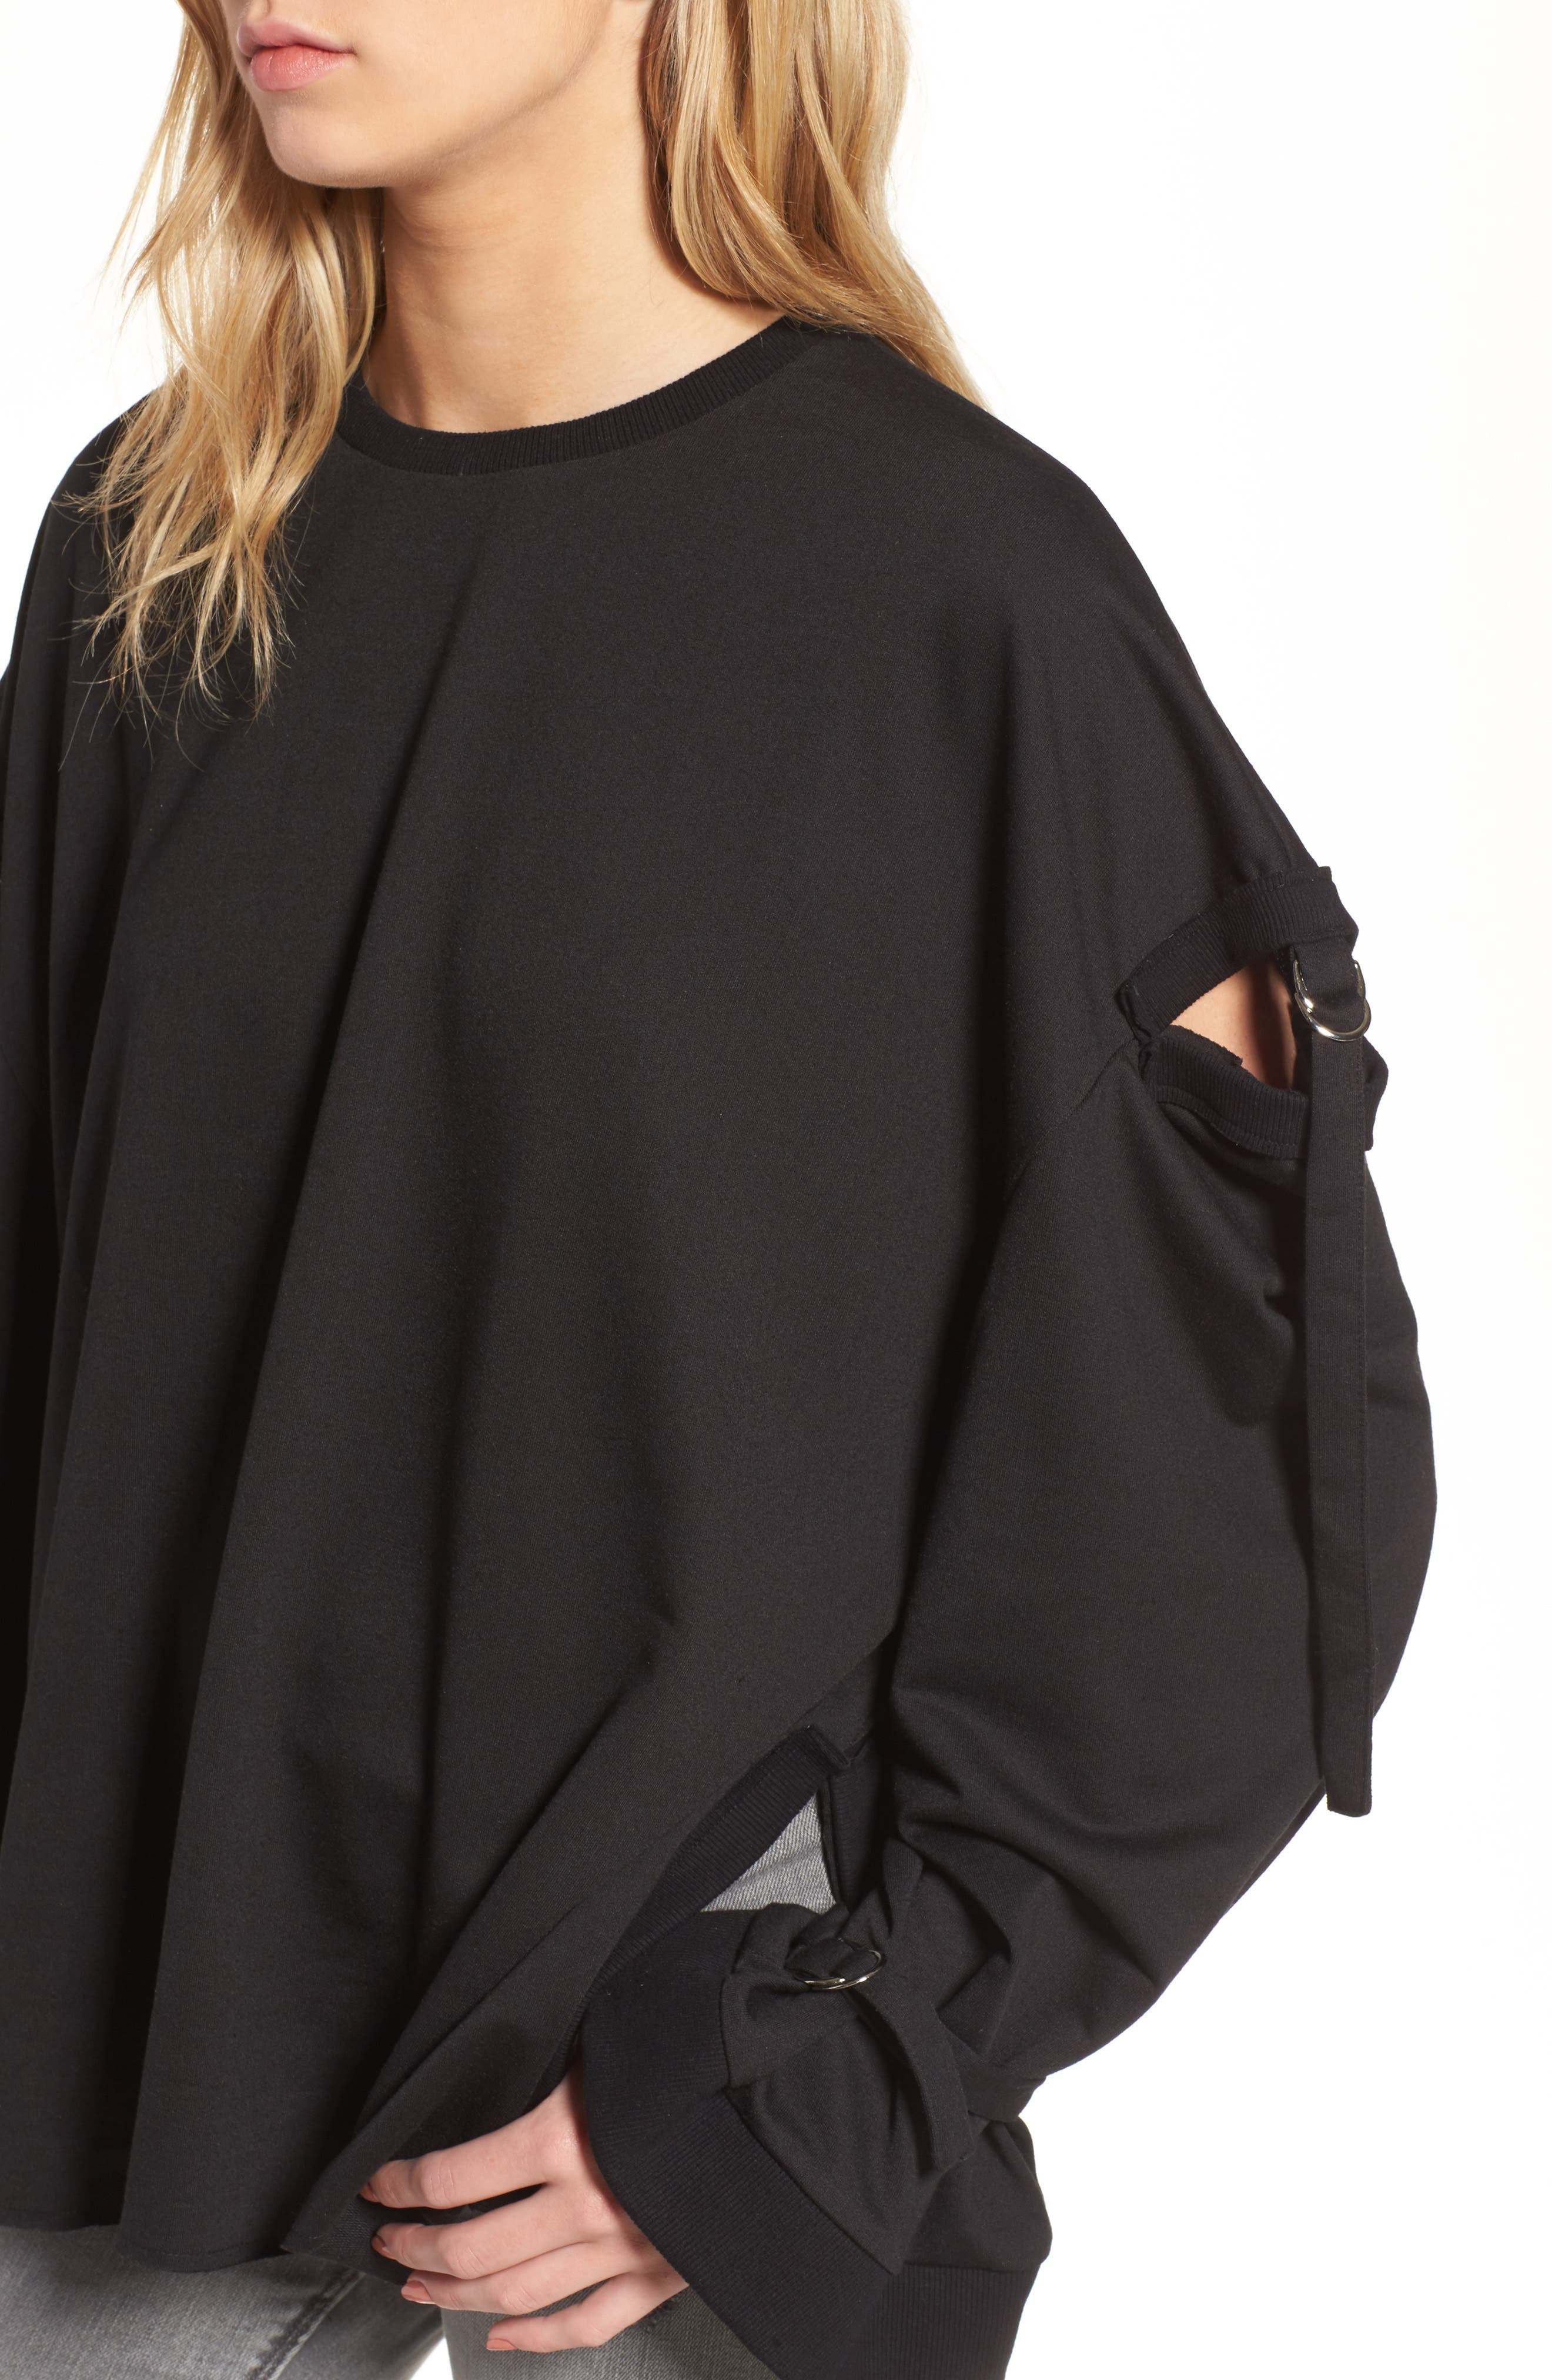 Cutout Detail Sweatshirt,                             Alternate thumbnail 4, color,                             001